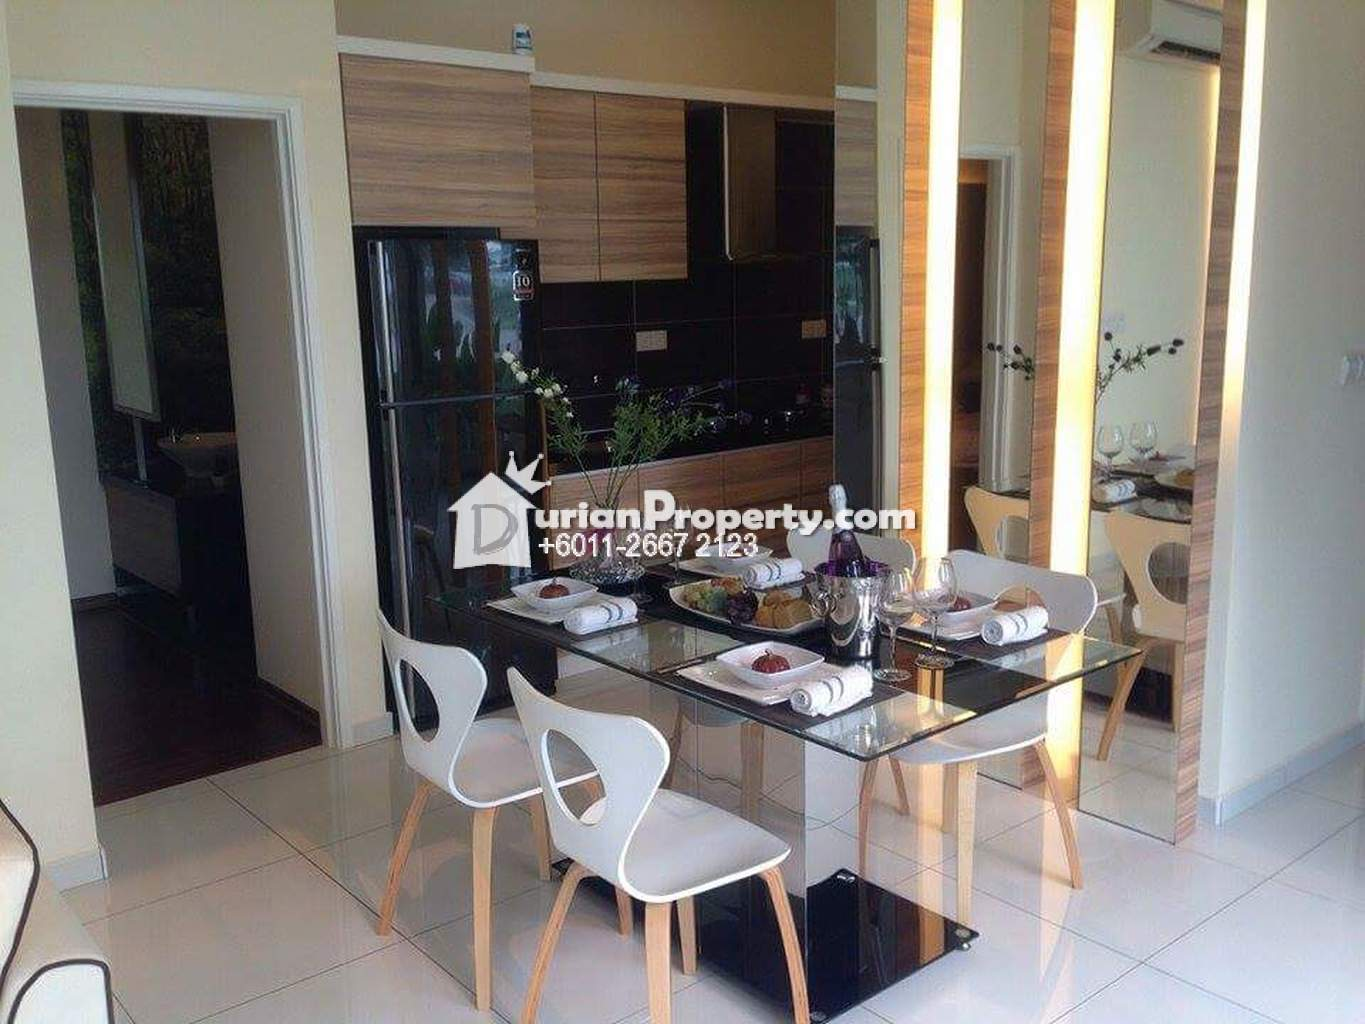 Serviced Residence For Sale At G Residence Johor Bahru For Rm 500 000 By Emily Goh Durianproperty